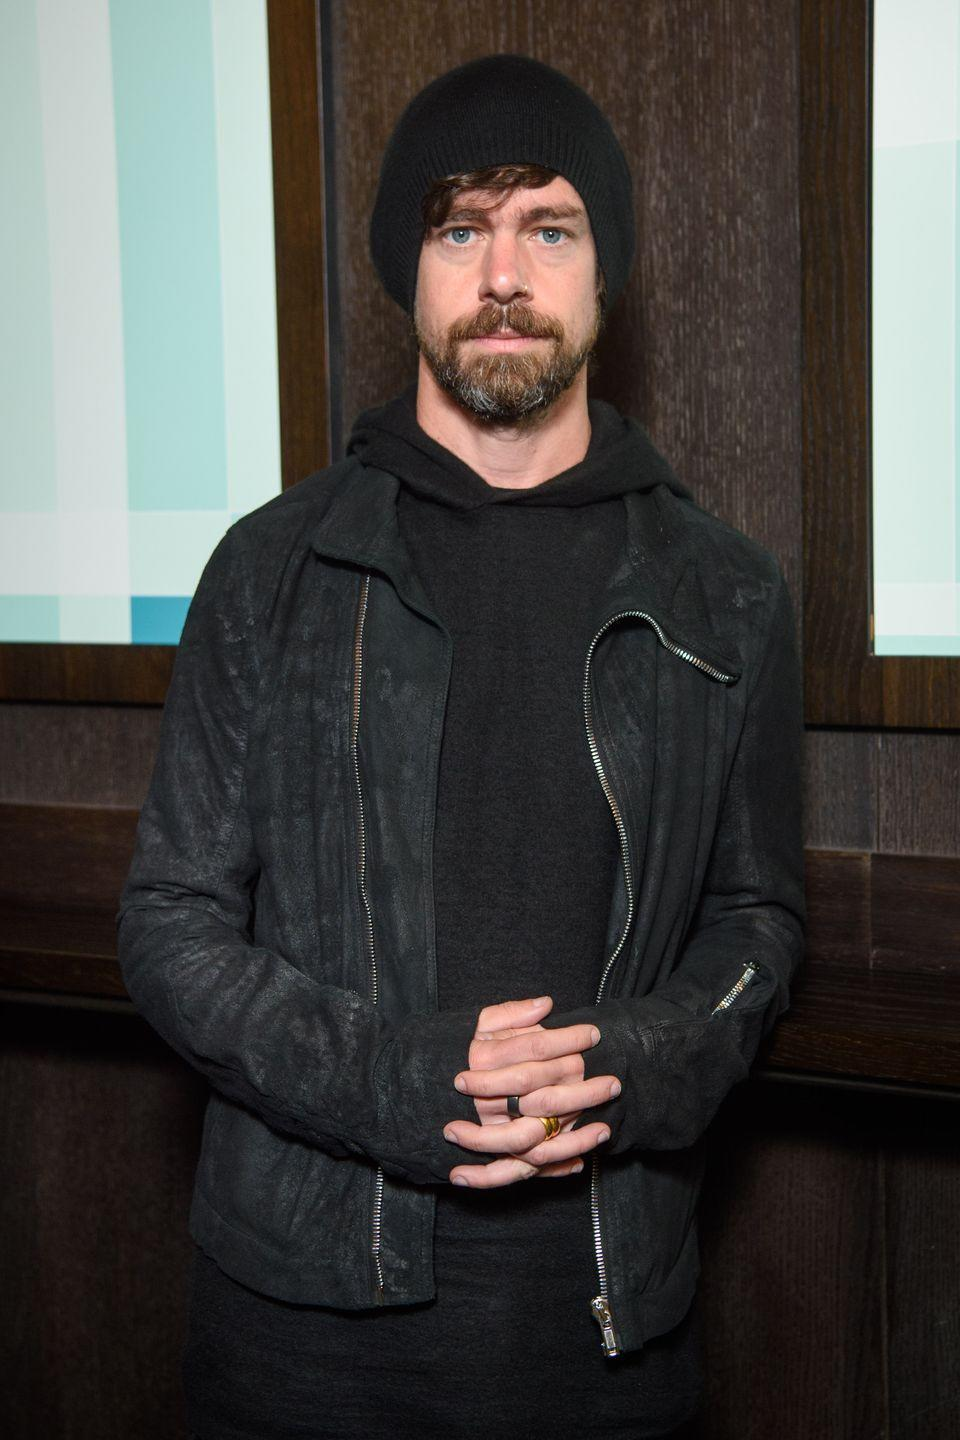 <p>The Twitter co-founder is an improbable—and easily imitated—style hero (his penchant for all things Rick Owens certainly doesn't hurt) whose closet skews as dark as any of the remotest corners of the hellish platform he helped create. </p>